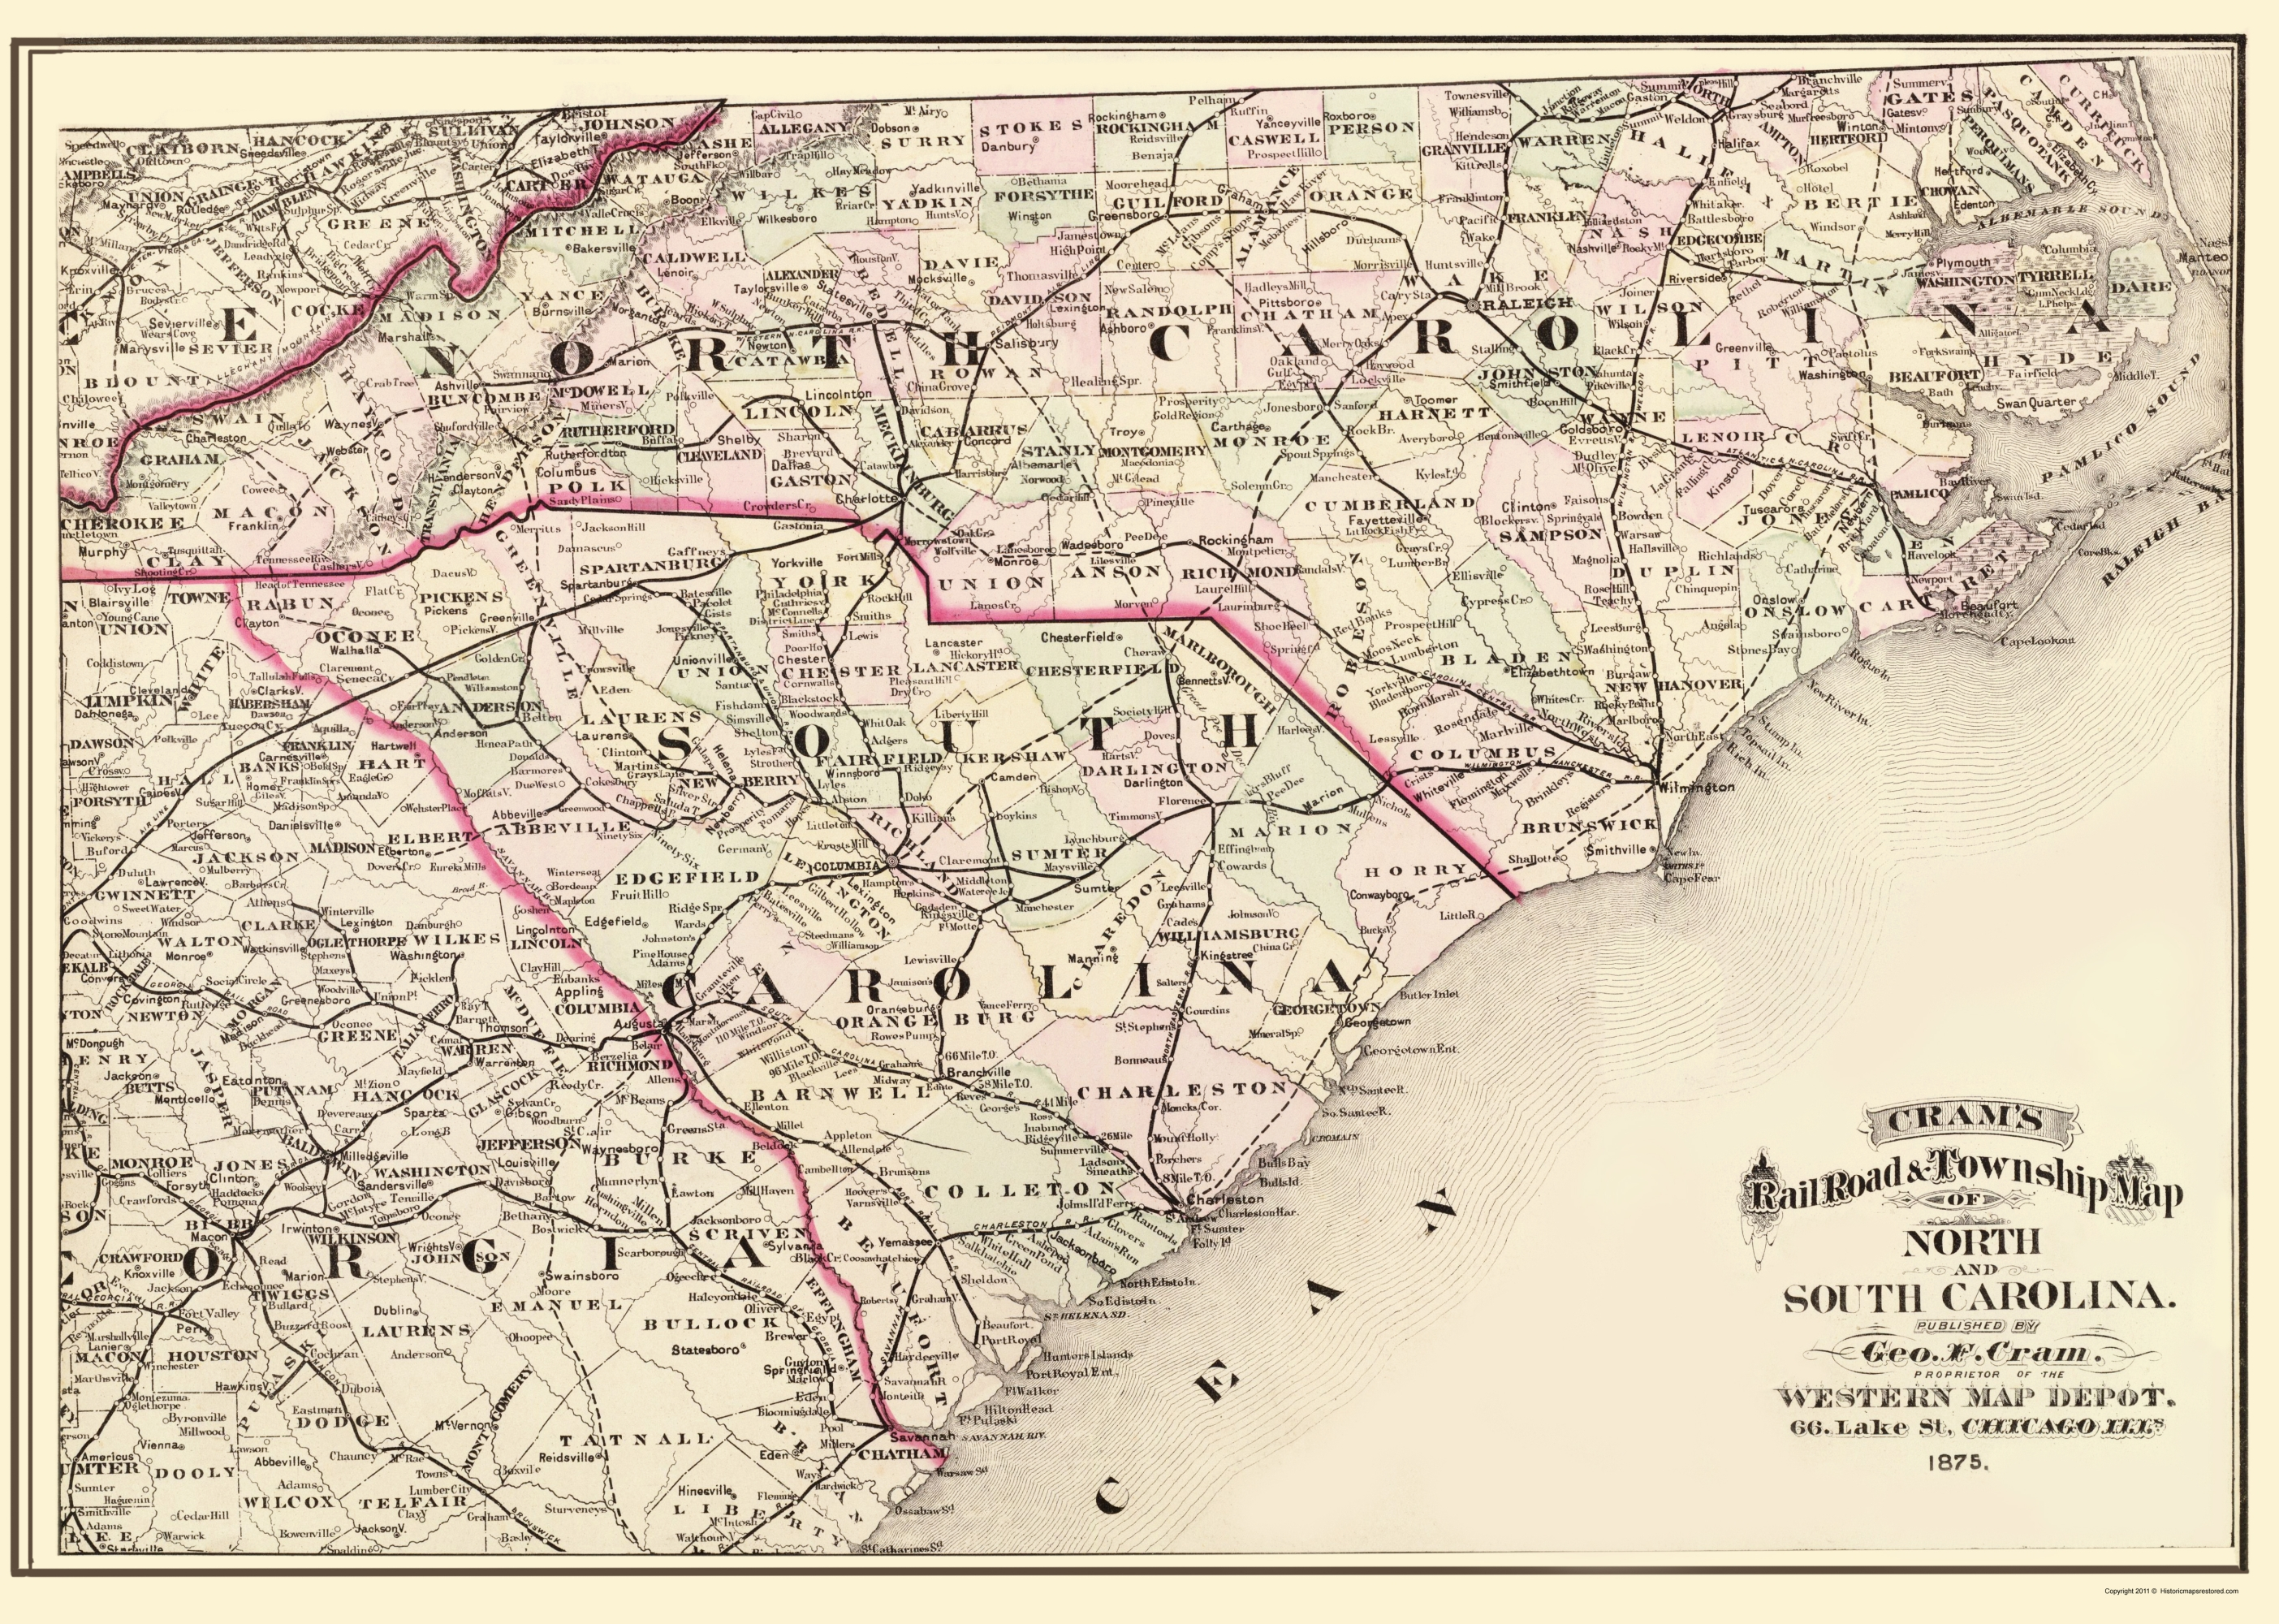 Old State Map - North Carolina, South Carolina 1875